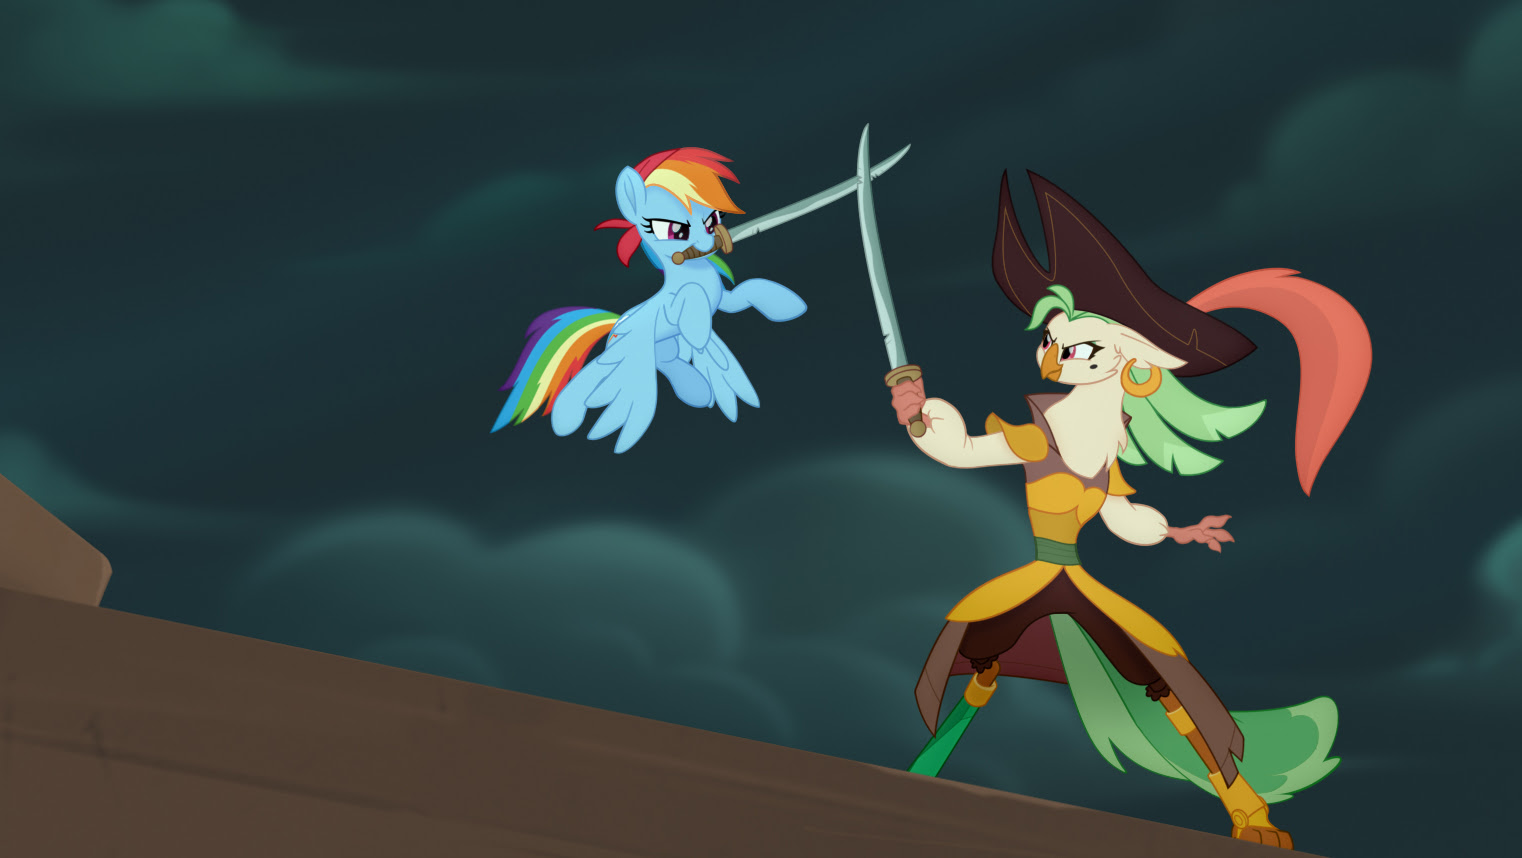 An ode to My Little Pony: The Movie and its brand new trailer screenshot